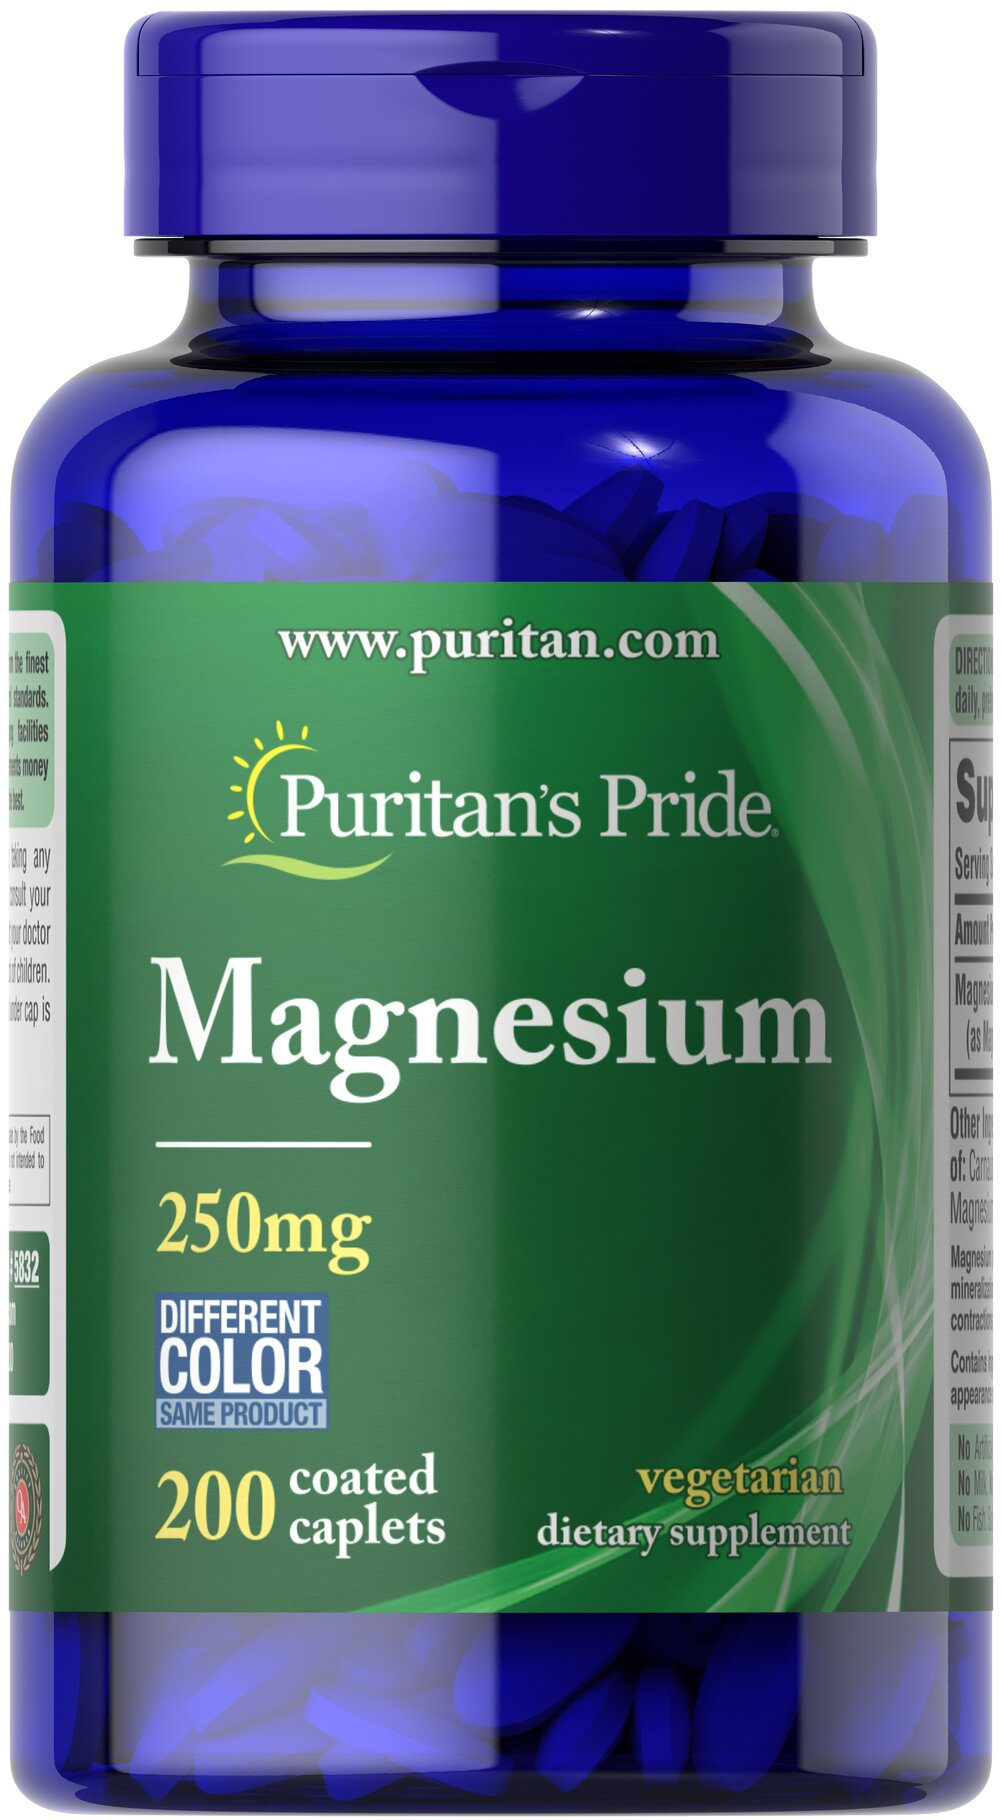 Magnesium 250 mg <p>Magnesium offers another option, besides Calcium, for supporting bone health.** Magnesium plays an essential role in maintaining bone mineralization, and is also involved in muscle contractions and nerve impulses.** Adults can take one caplet daily with a meal.</p> 200 Caplets 250 mg $9.78